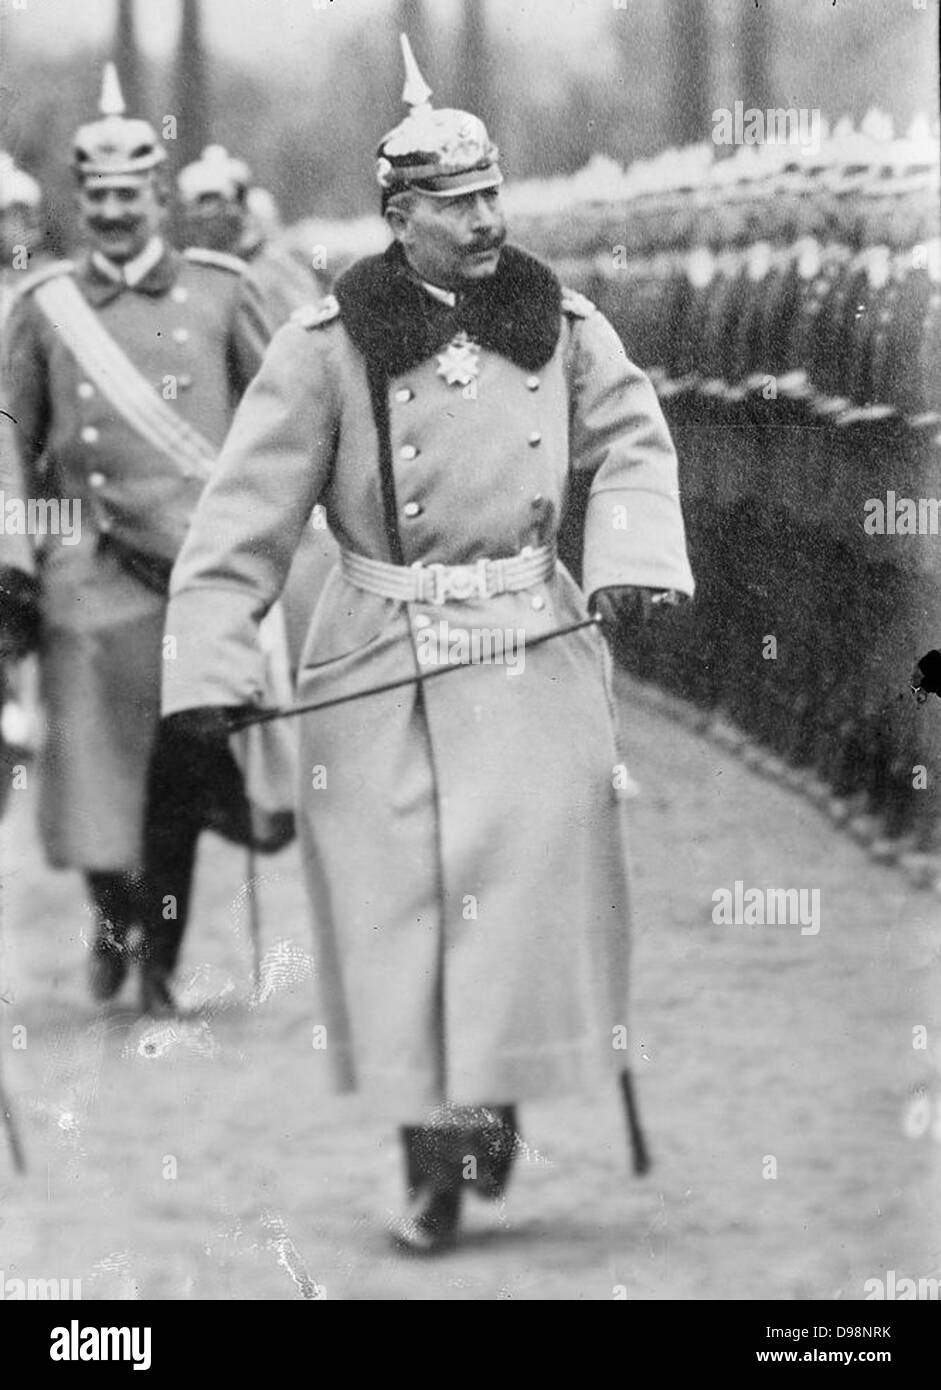 Wilhelm II (1859-1941) Emperor of Germany 1888-1918, in uniform and wearing a pickelhelm, reviewing troops. Military Stock Photo